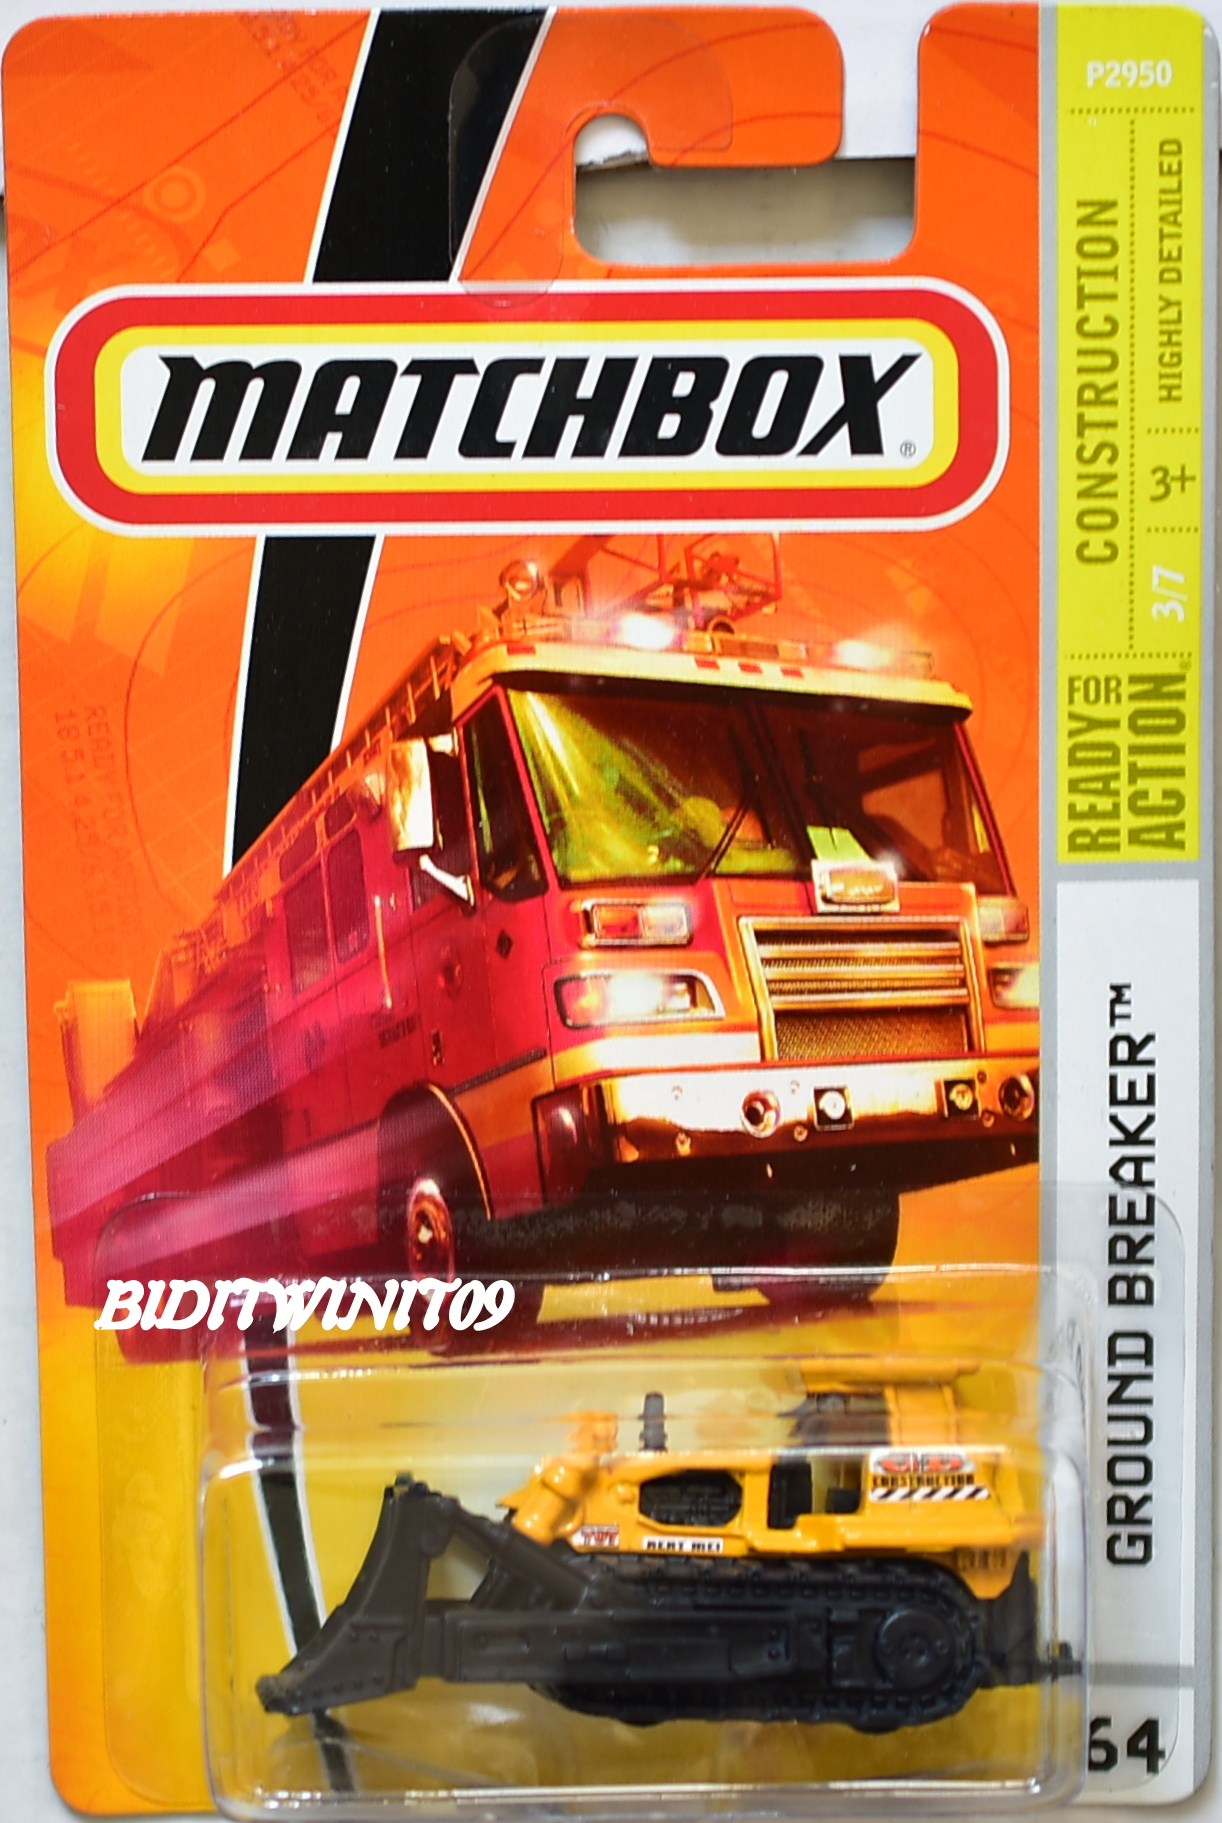 MATCHBOX 2009 CONSTRUCTION GROUND BREAKER #64 E+